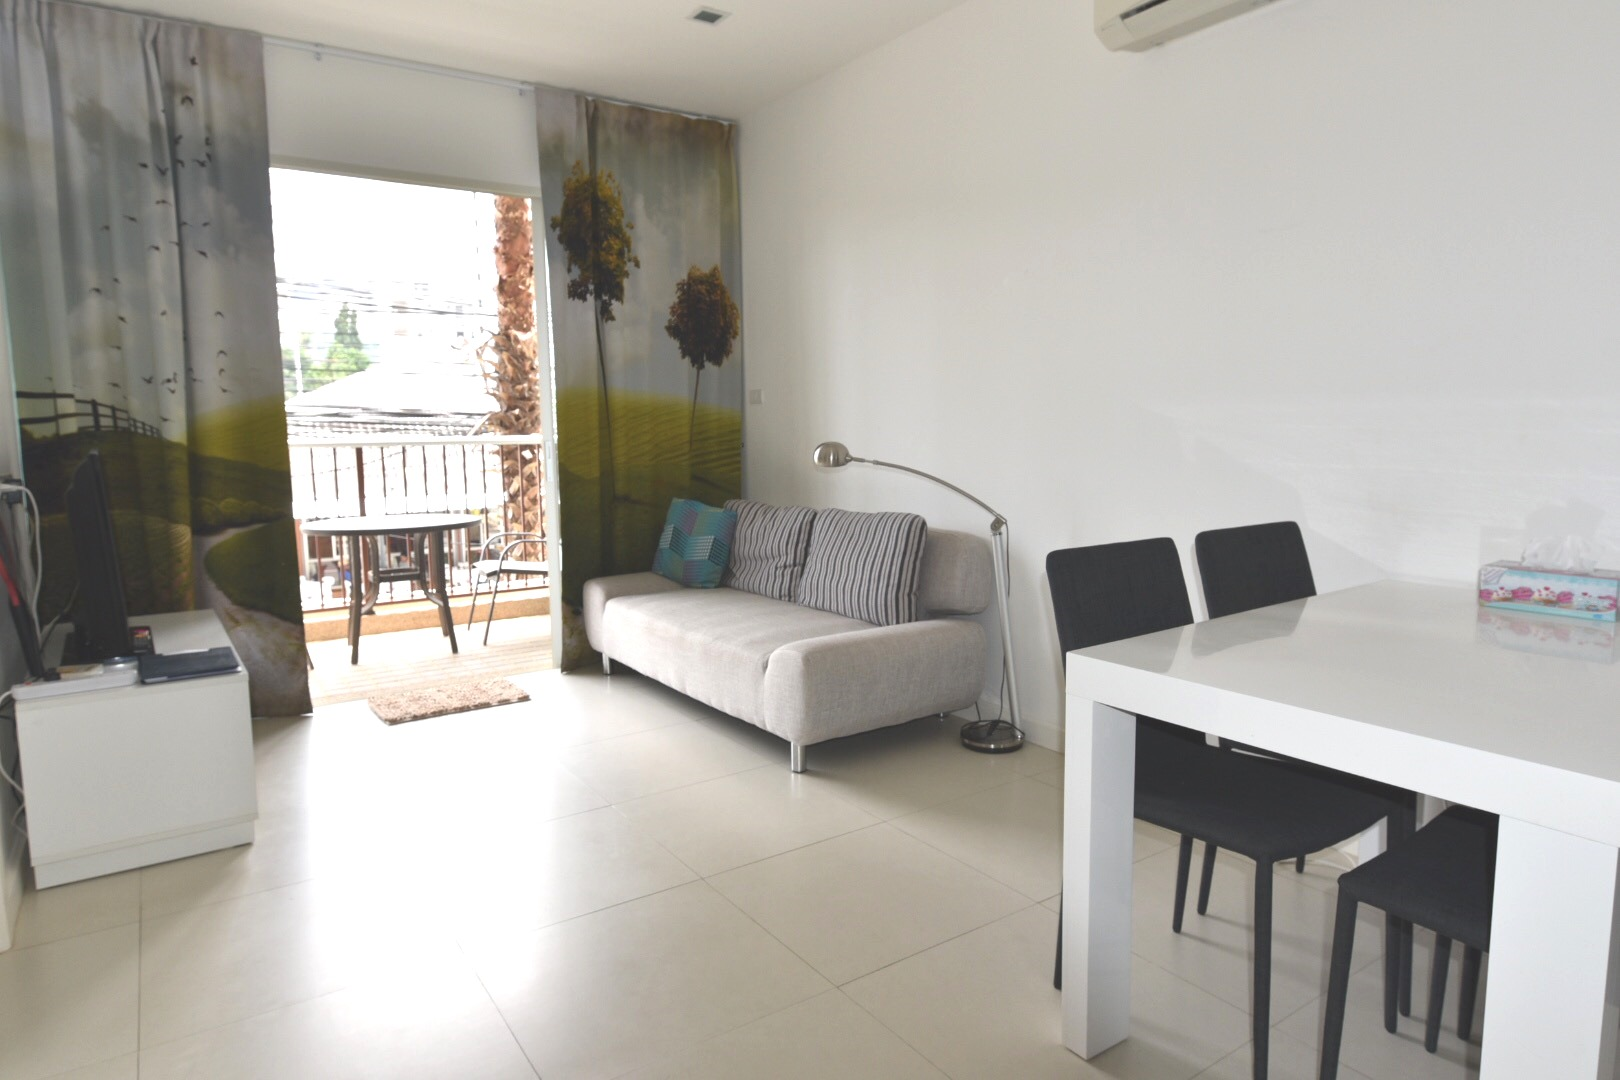 One Bedroom Condo in Hua Hin at The Seacraze - DanSiam Property